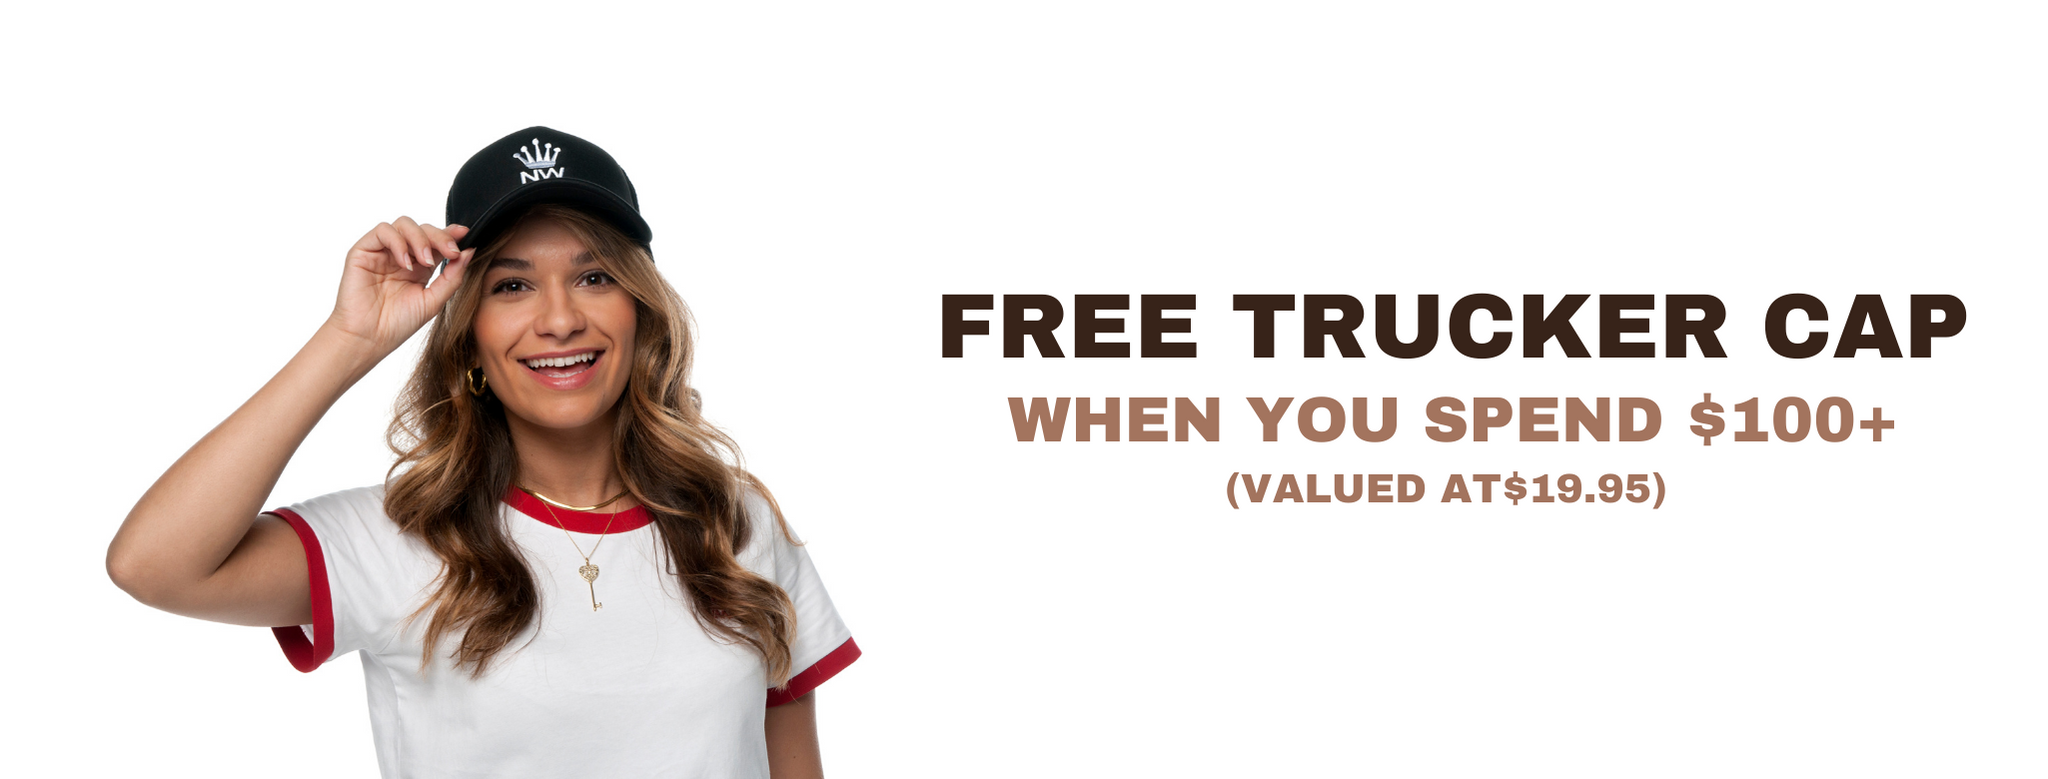 Free trucker cap when you spend over $100 at National Workwear Gold Coast Australia. High quality affordable workwear